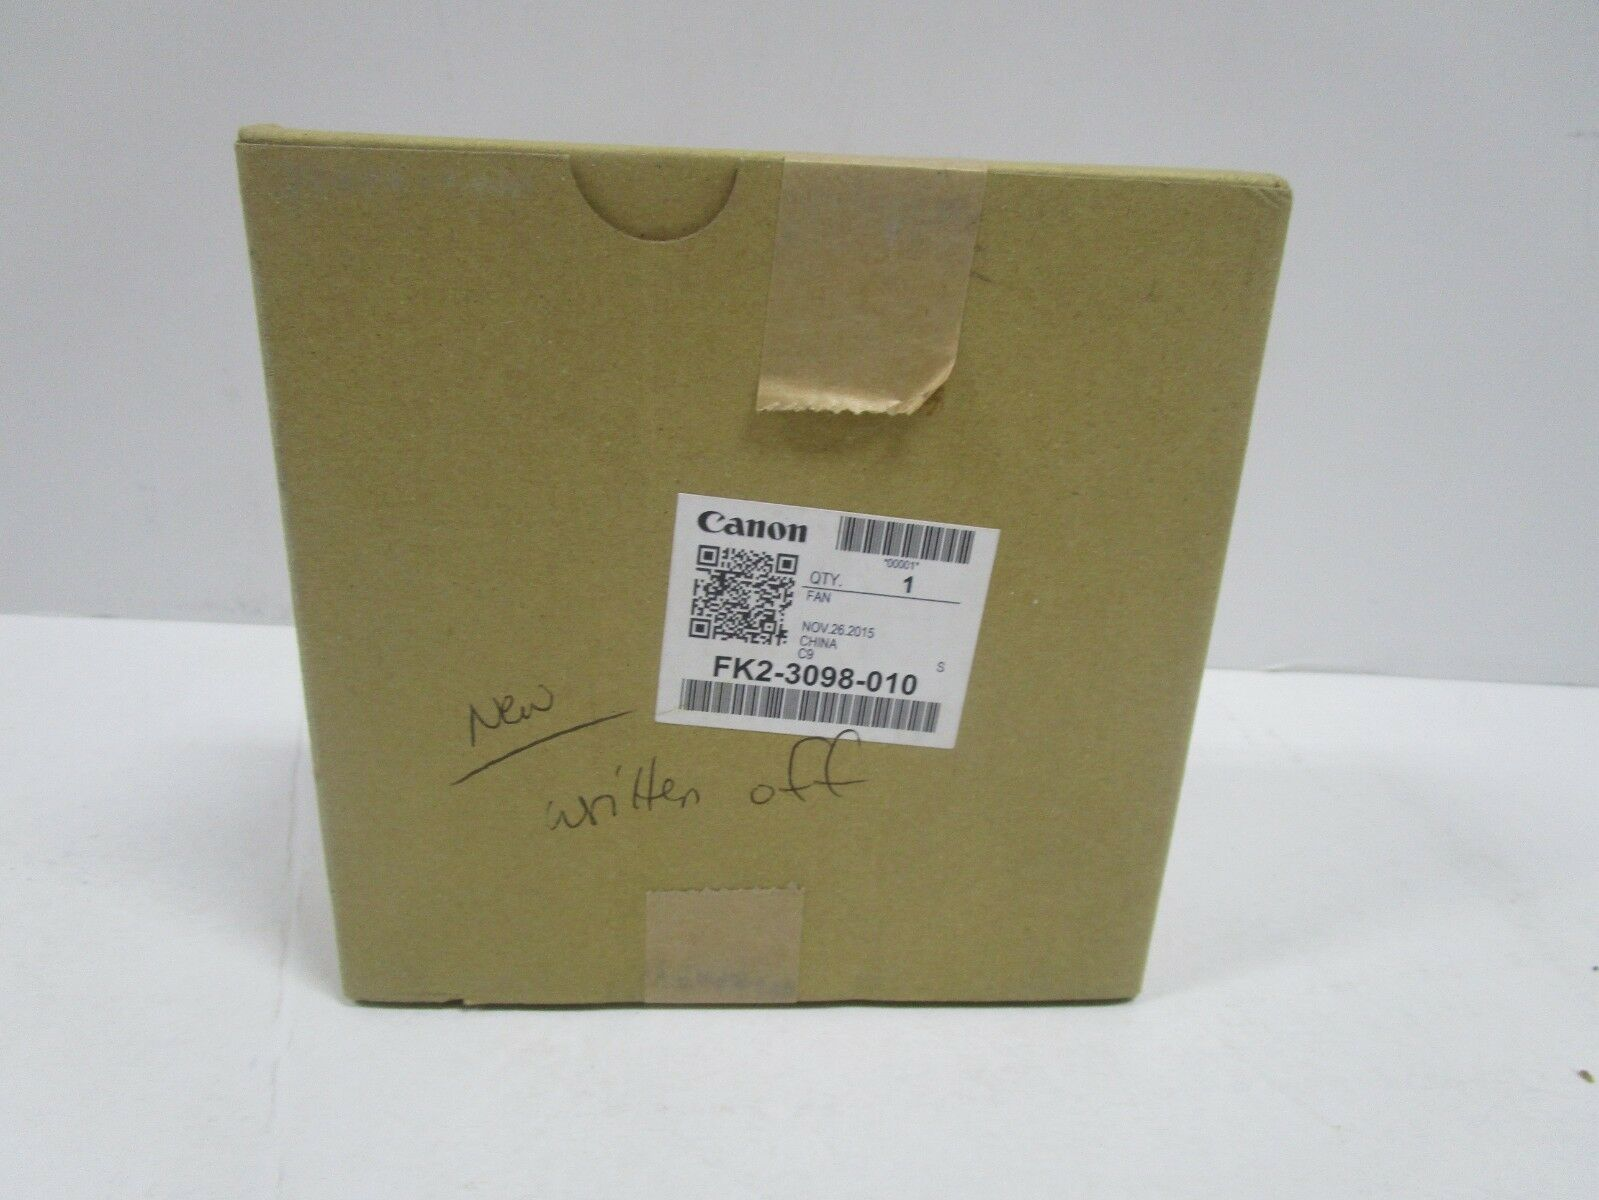 GENUINE CANON FK2-3098-010 PART NEW SEALED SEE PHOTOS